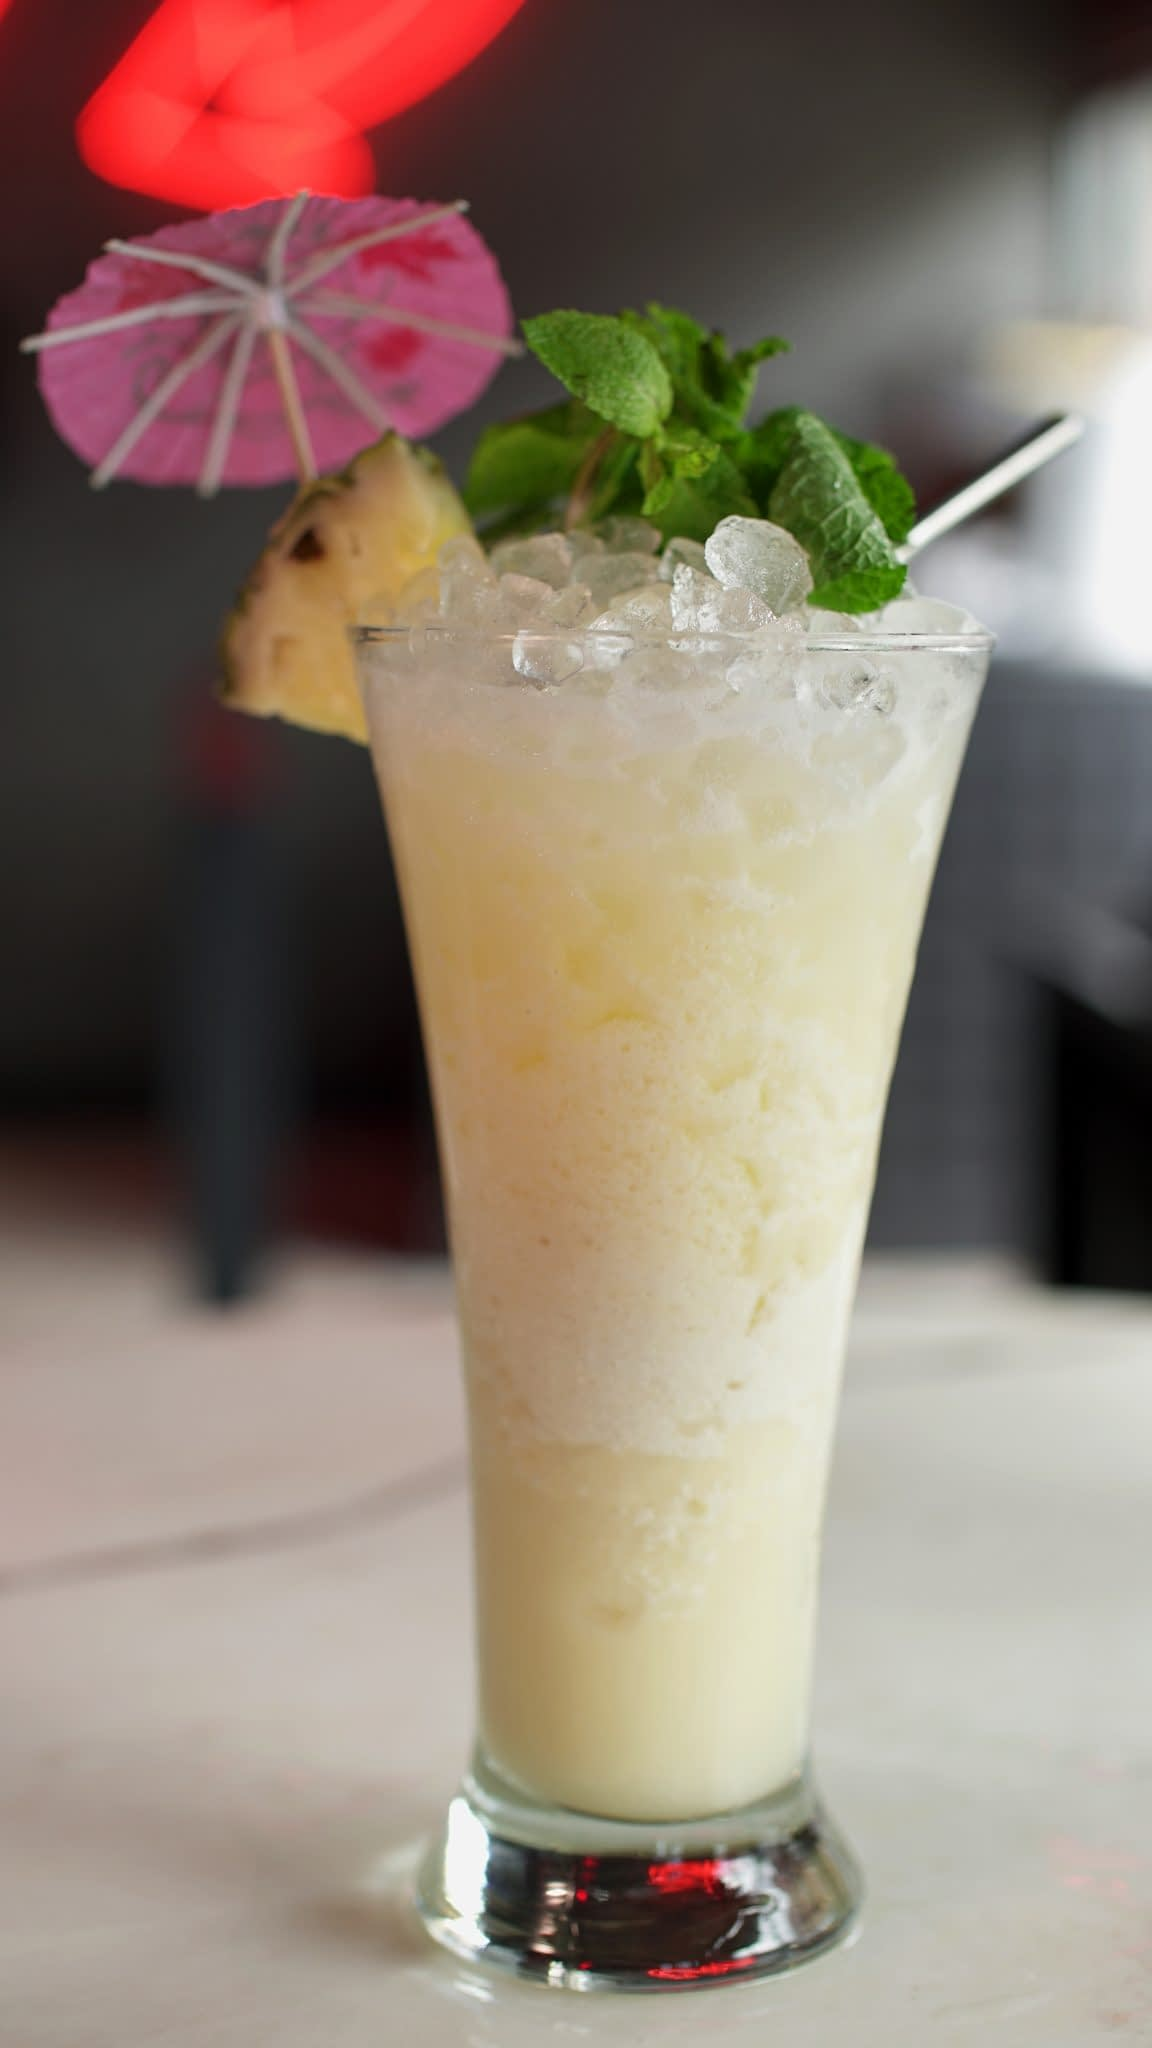 A cream colored cocktail served with pebble ice in a tall pilsner glass is garnished with a mint sprig, pineapple wedge, and cocktail parasol. The drink sits on an out of focus marble table with a neon sign faintly visible in the background.